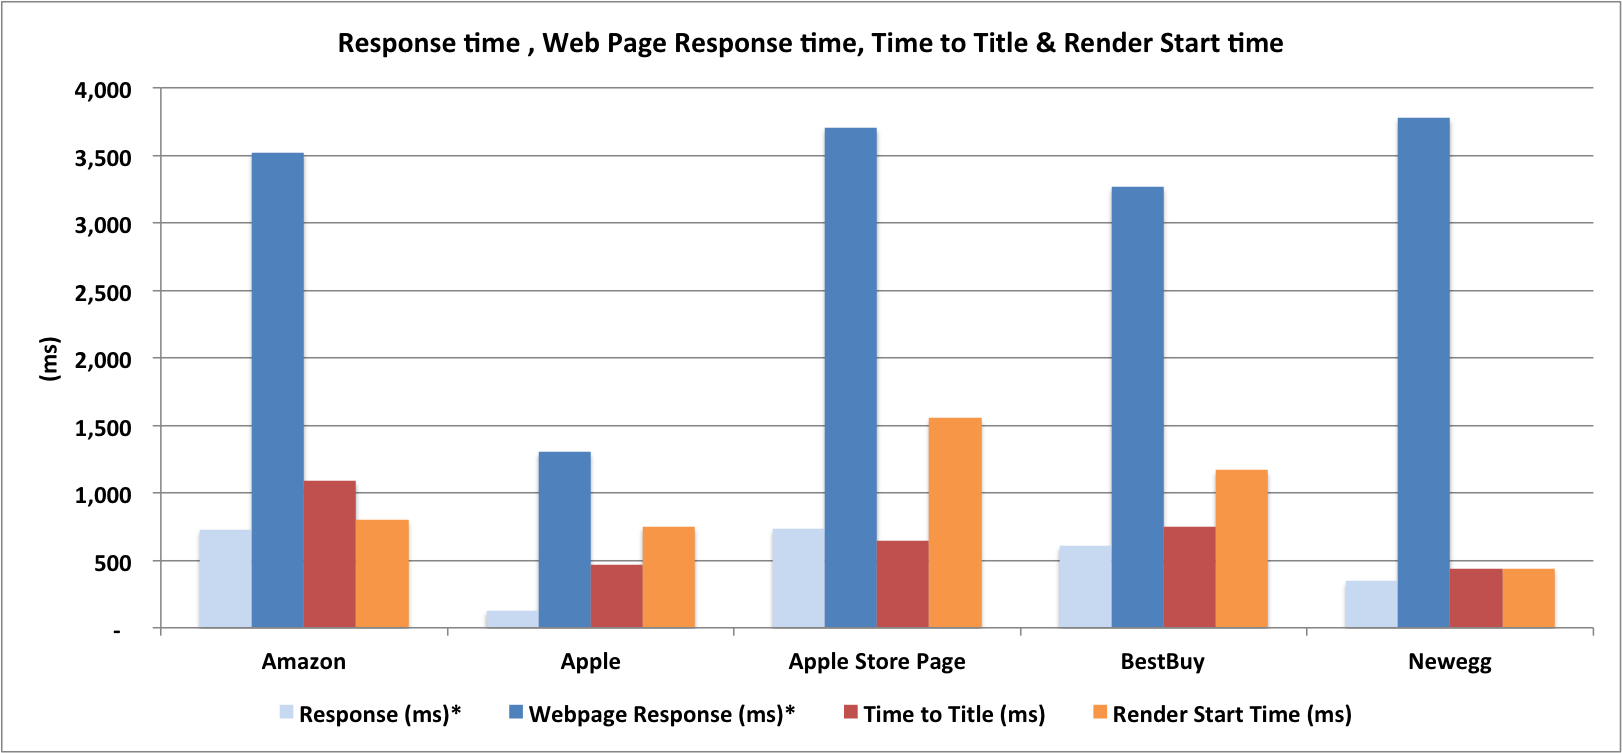 Ecommerce Benchmark: Response, Web Page Response, Render Start Time, Time to Title